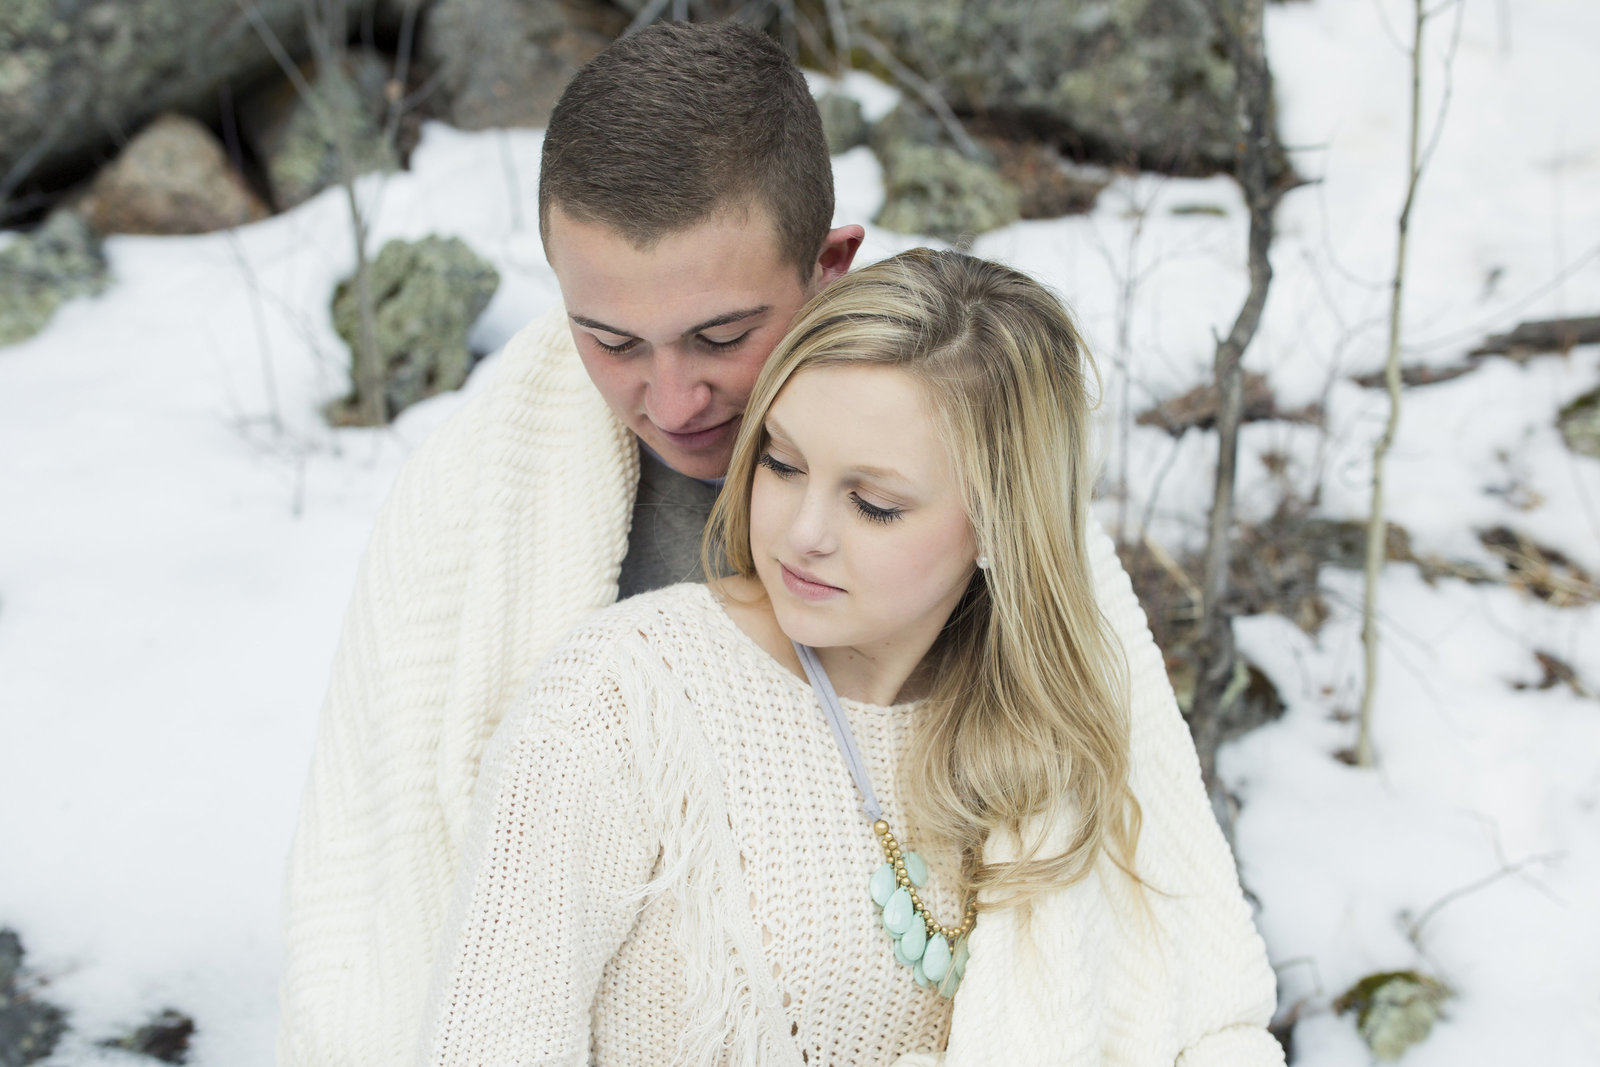 Jessi-And-Zach-Photography-Colorado-Wedding-Photographer-Nevada-Wedding-Photographer-Nevada-Engagement-Photographer_09